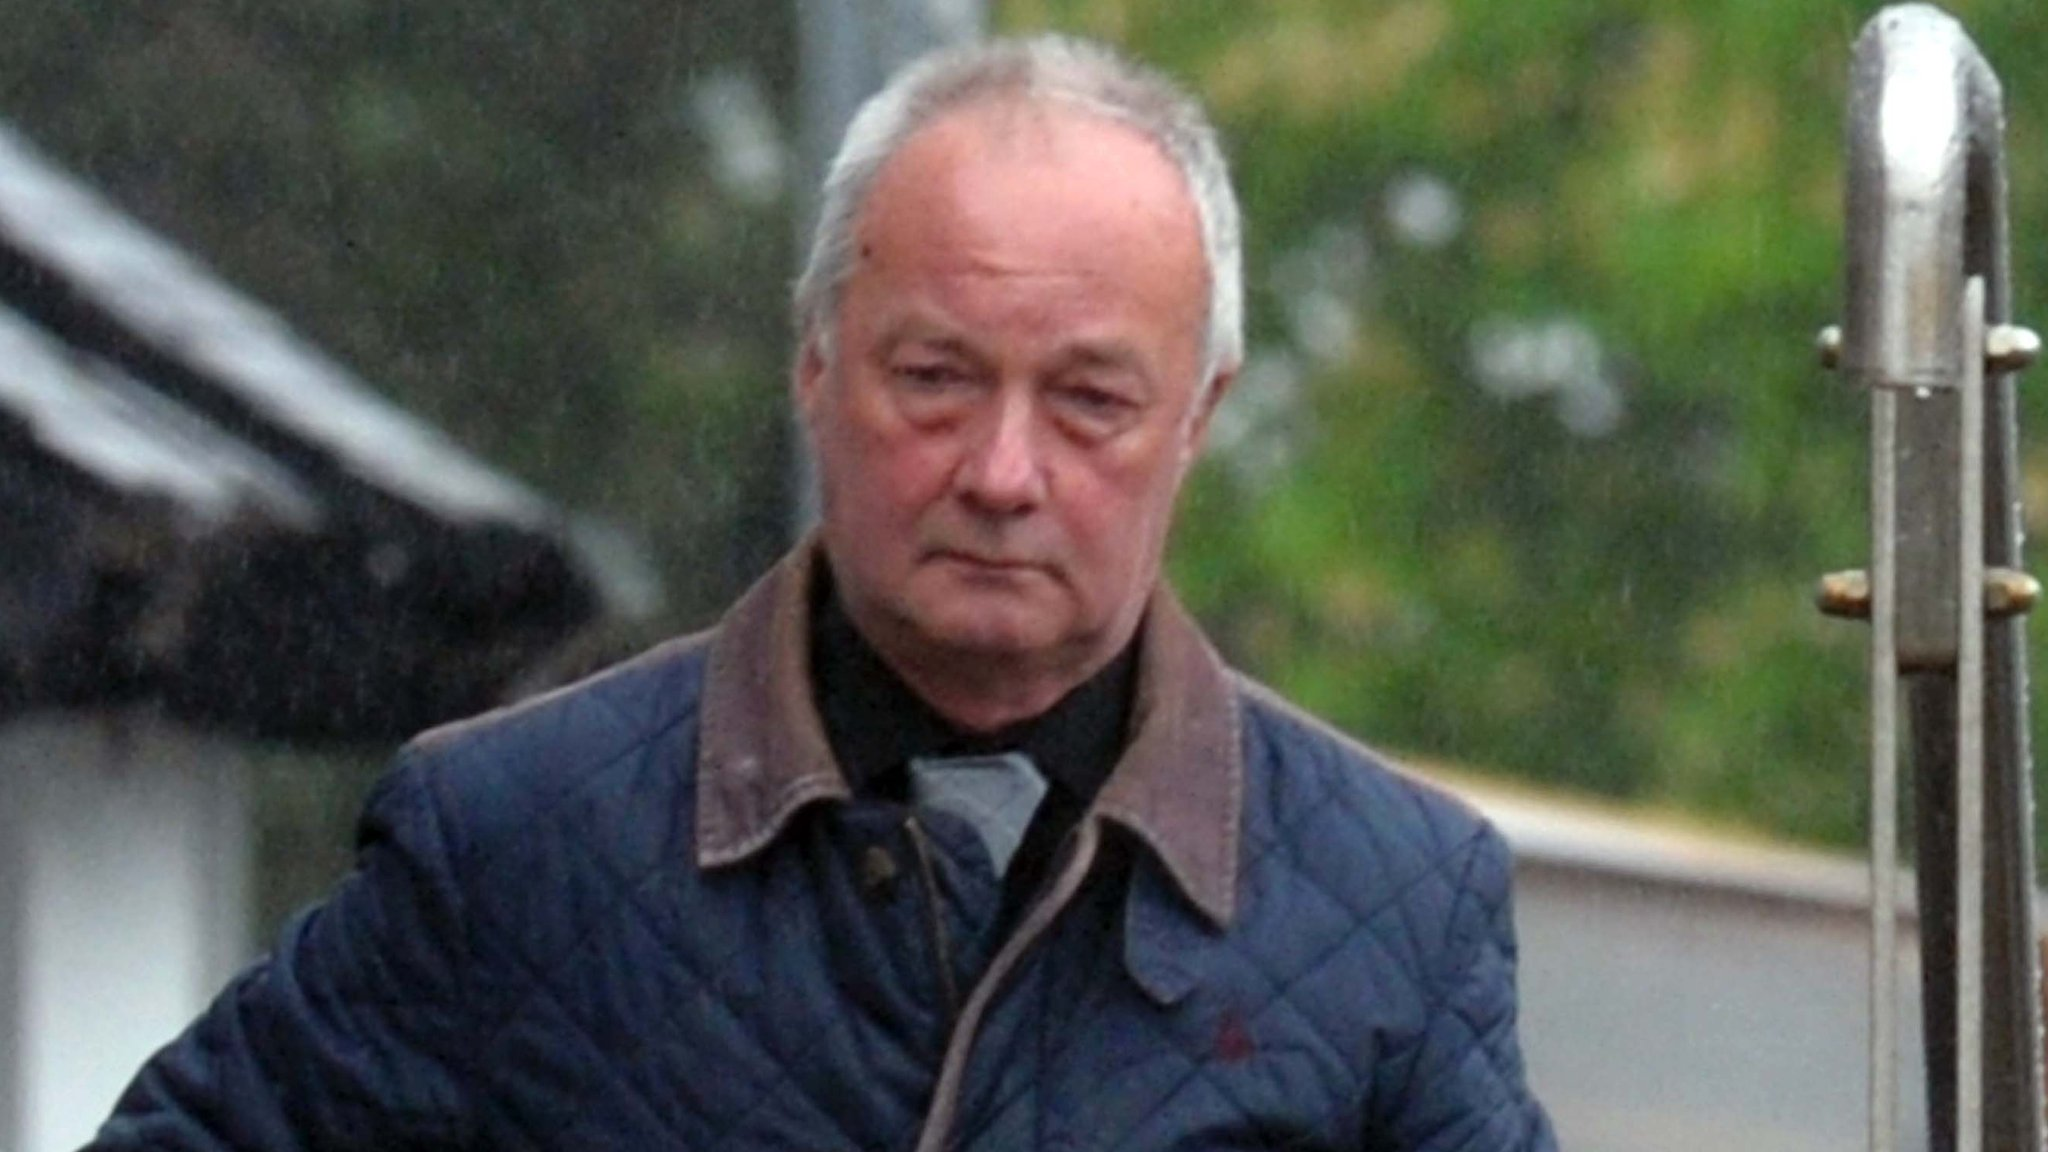 Abergwyngregyn solicitor jailed for pocketing wills